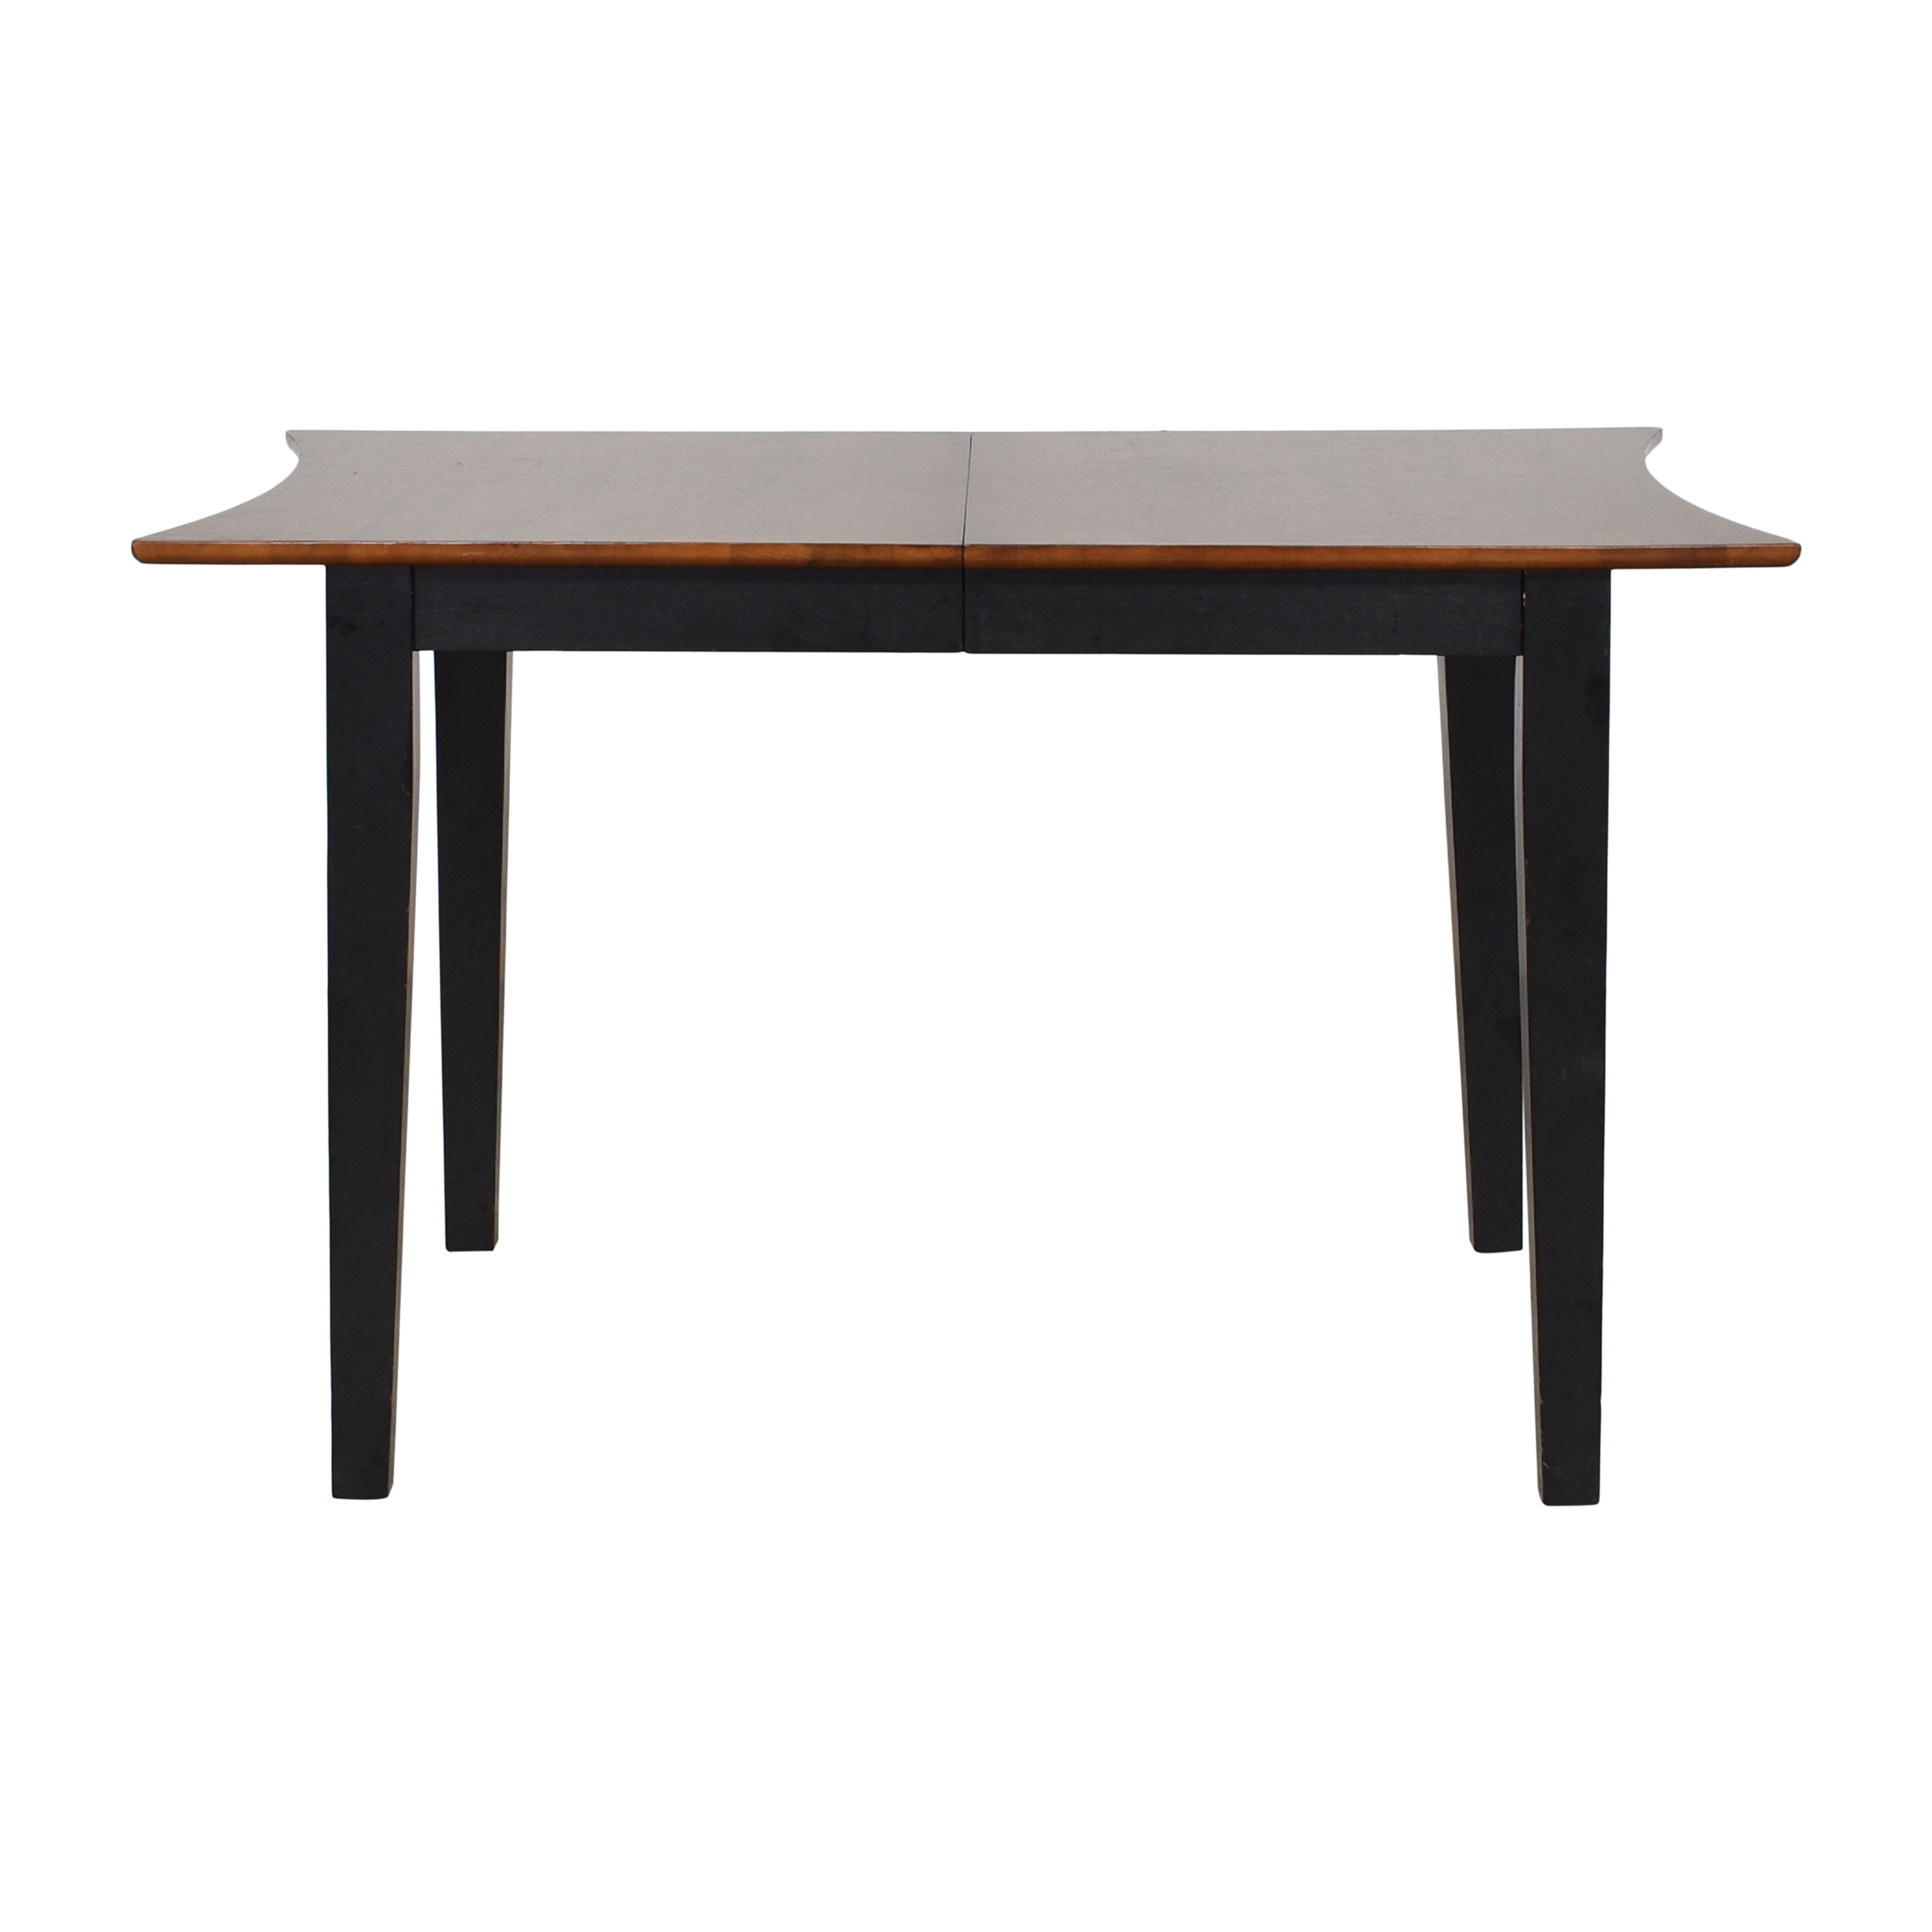 Crate & Barrel Crate & Barrel Extension Dining Table ma